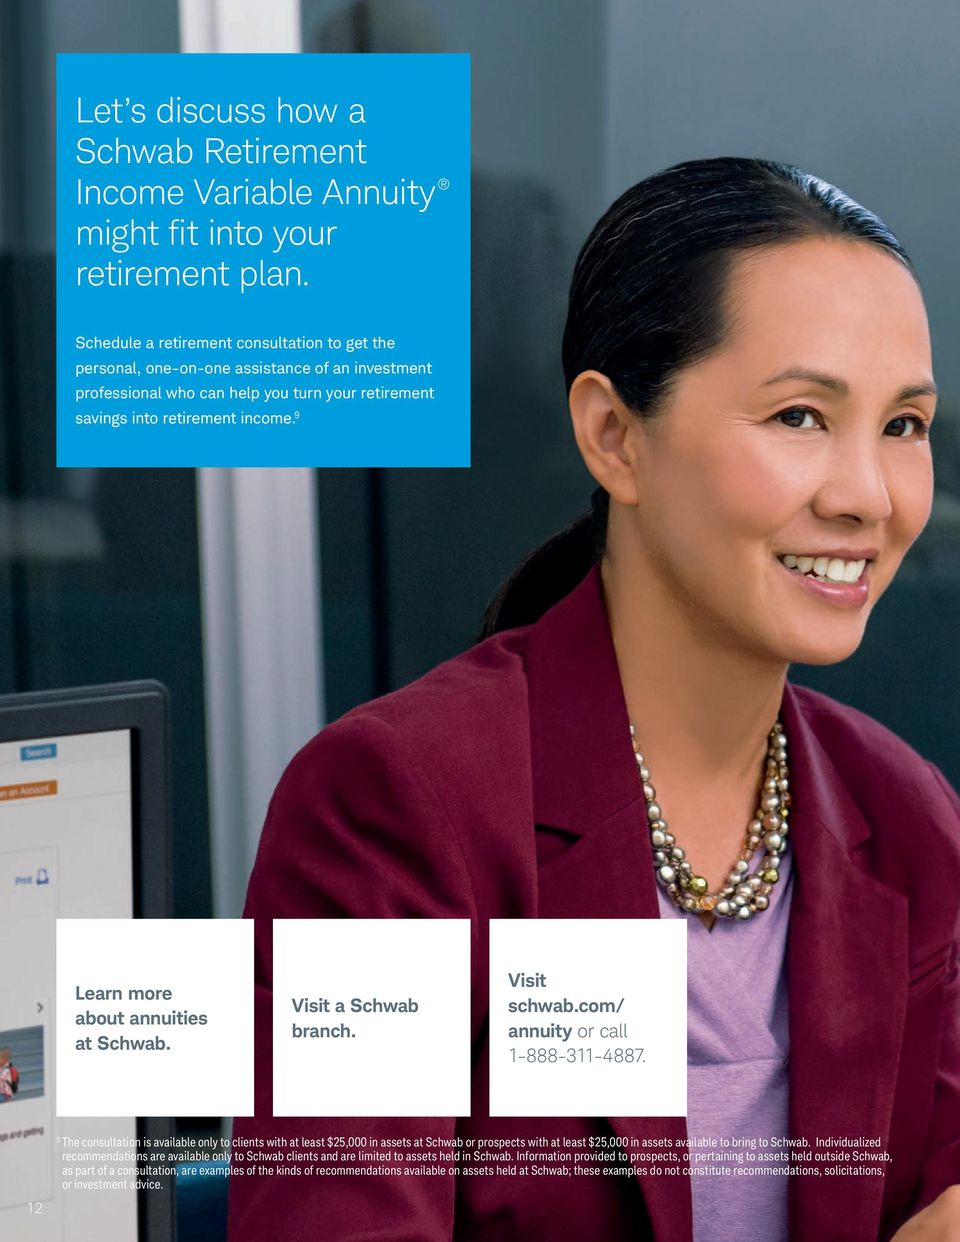 9 Learn more about annuities at Schwab. Visit a Schwab branch. Visit schwab.com/ annuity or call 1-888-311-4887.